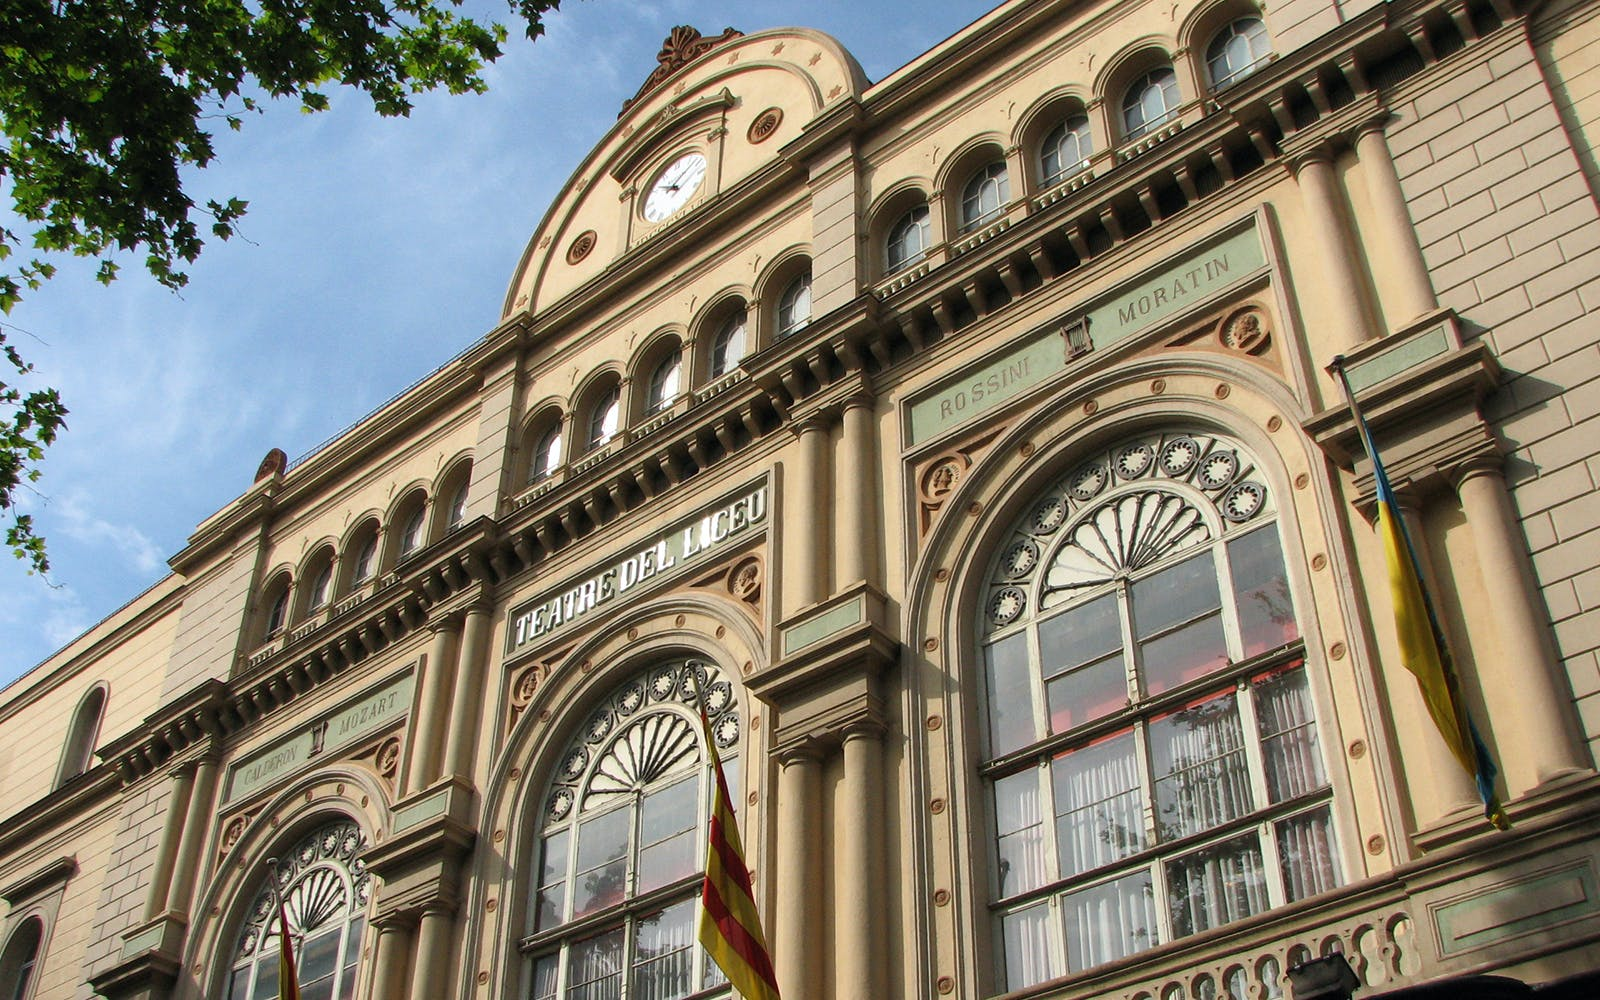 gran teatre del liceu guided tour-2